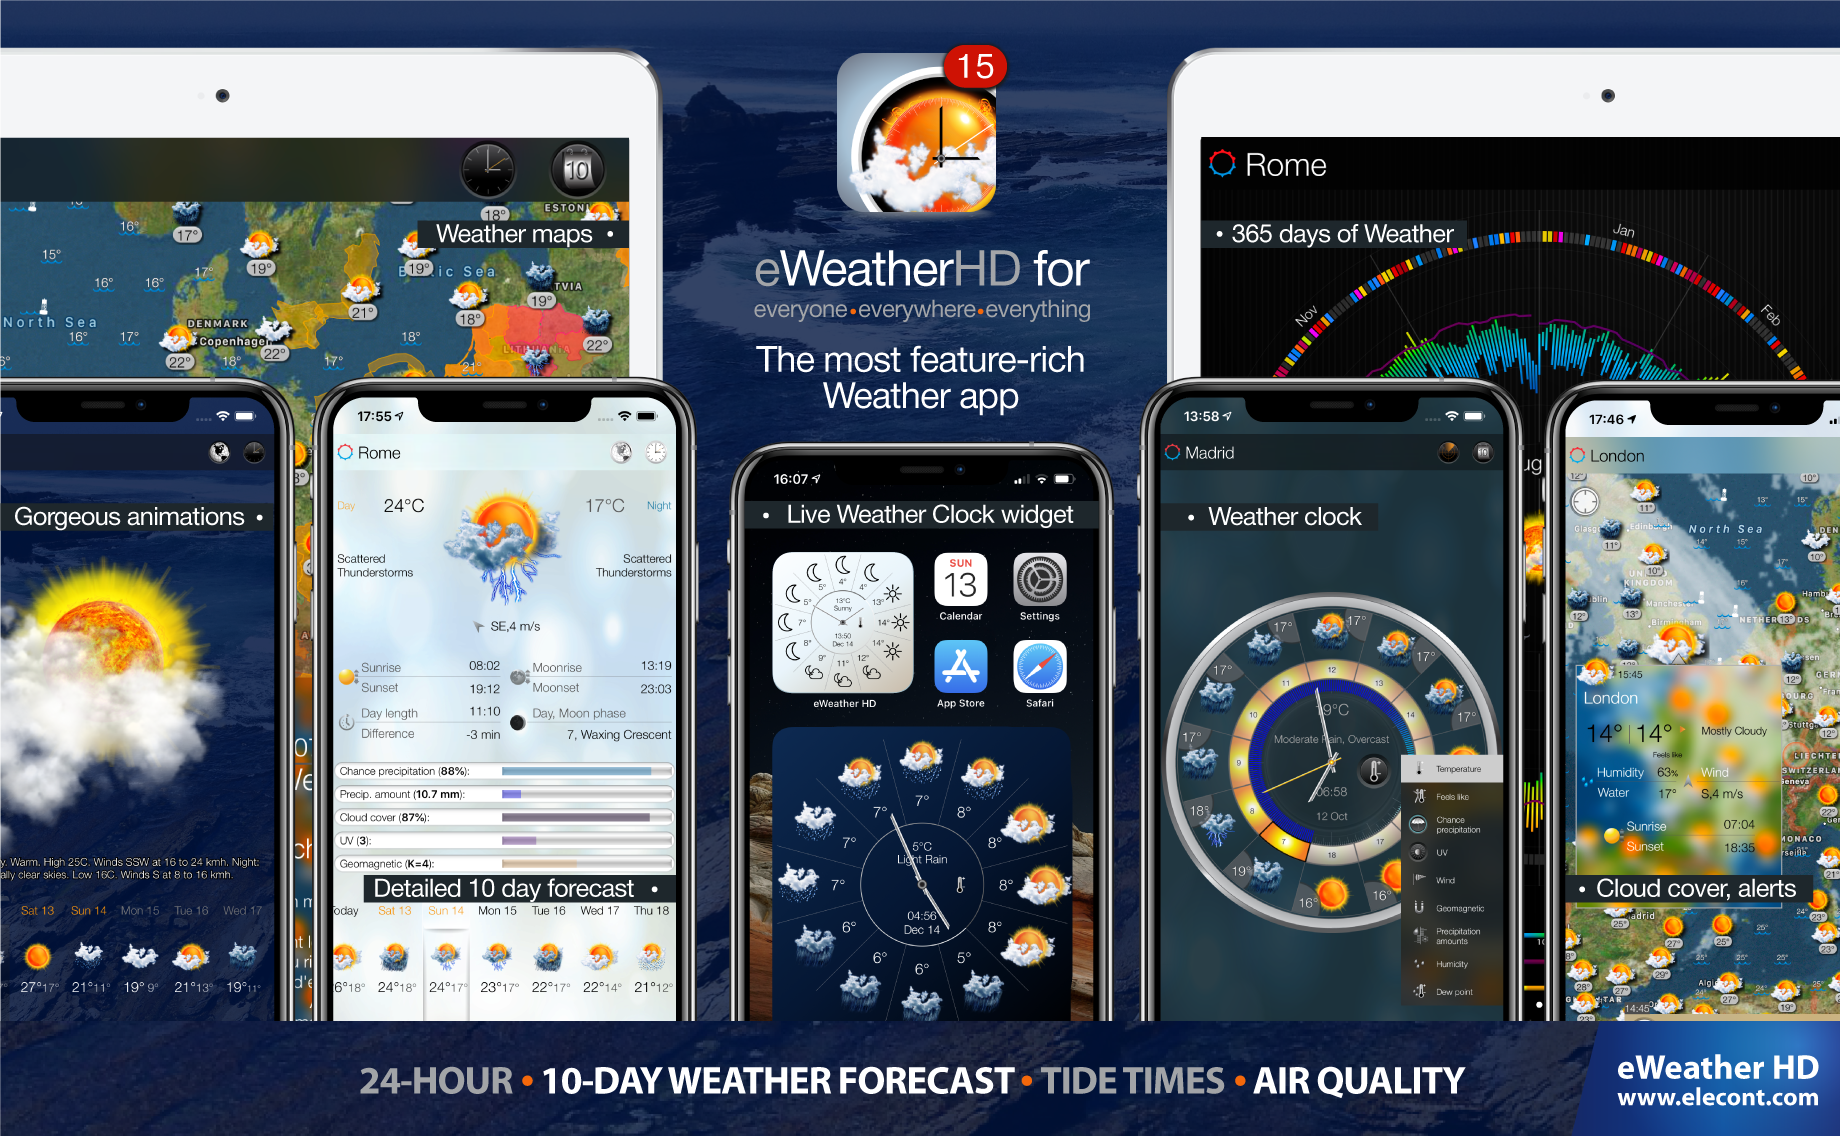 eWeather HD 3.7 for  iPhone and iPad- Get accurate weather 10-day forecast - future rain radar, weather alerts, wind, rain, snow, temperature of air, humidity, dew-point, uv-index, geomagnetic activity and more